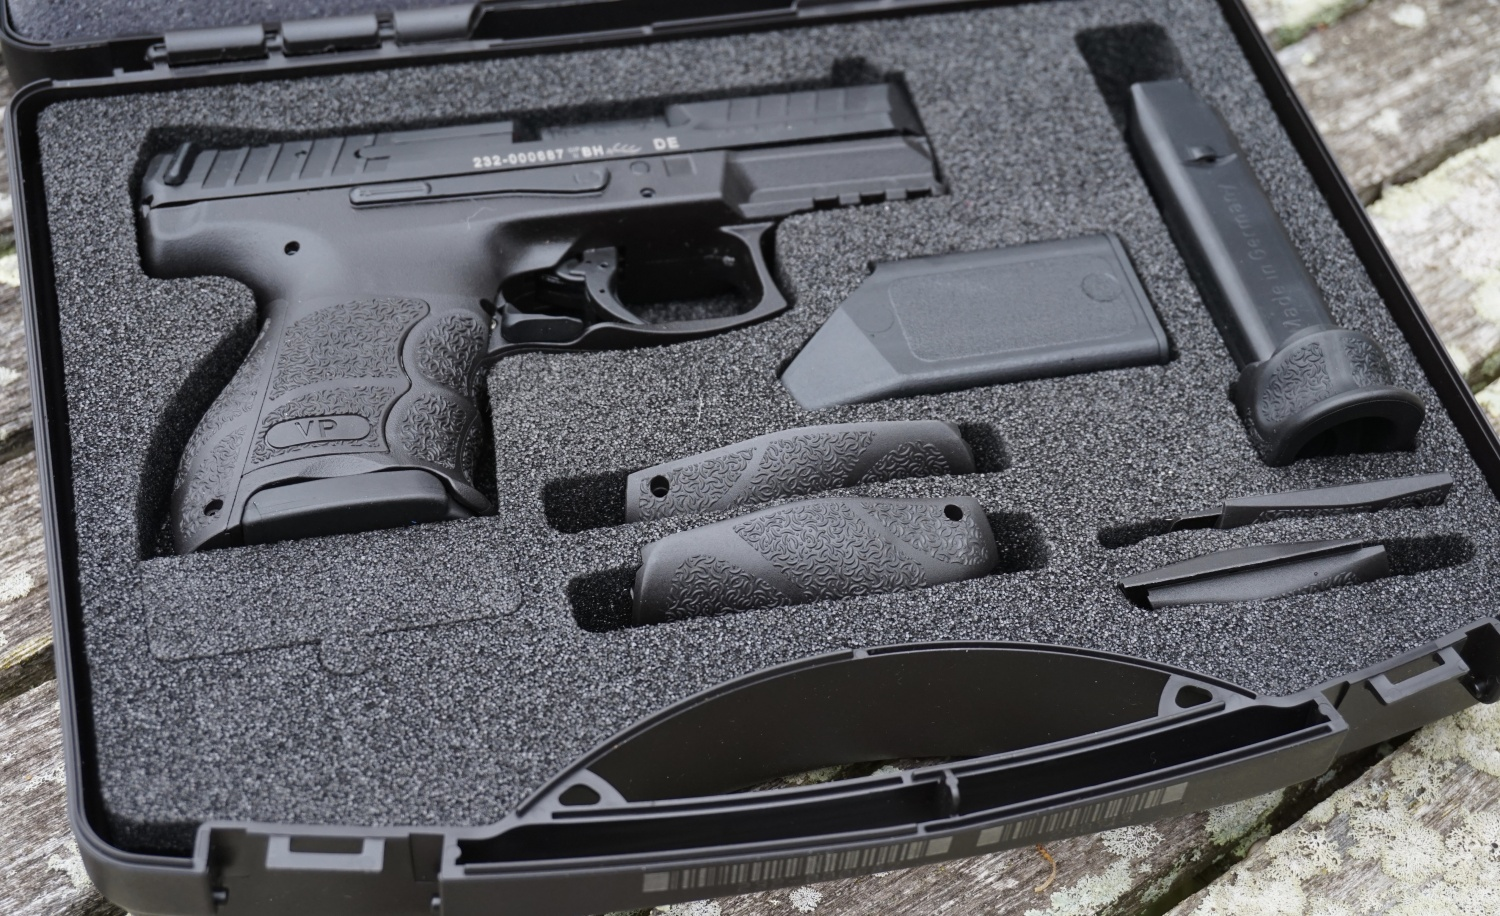 TFB REVIEW: H&K VP9SK Subcompact Polymer Pistol -The Firearm